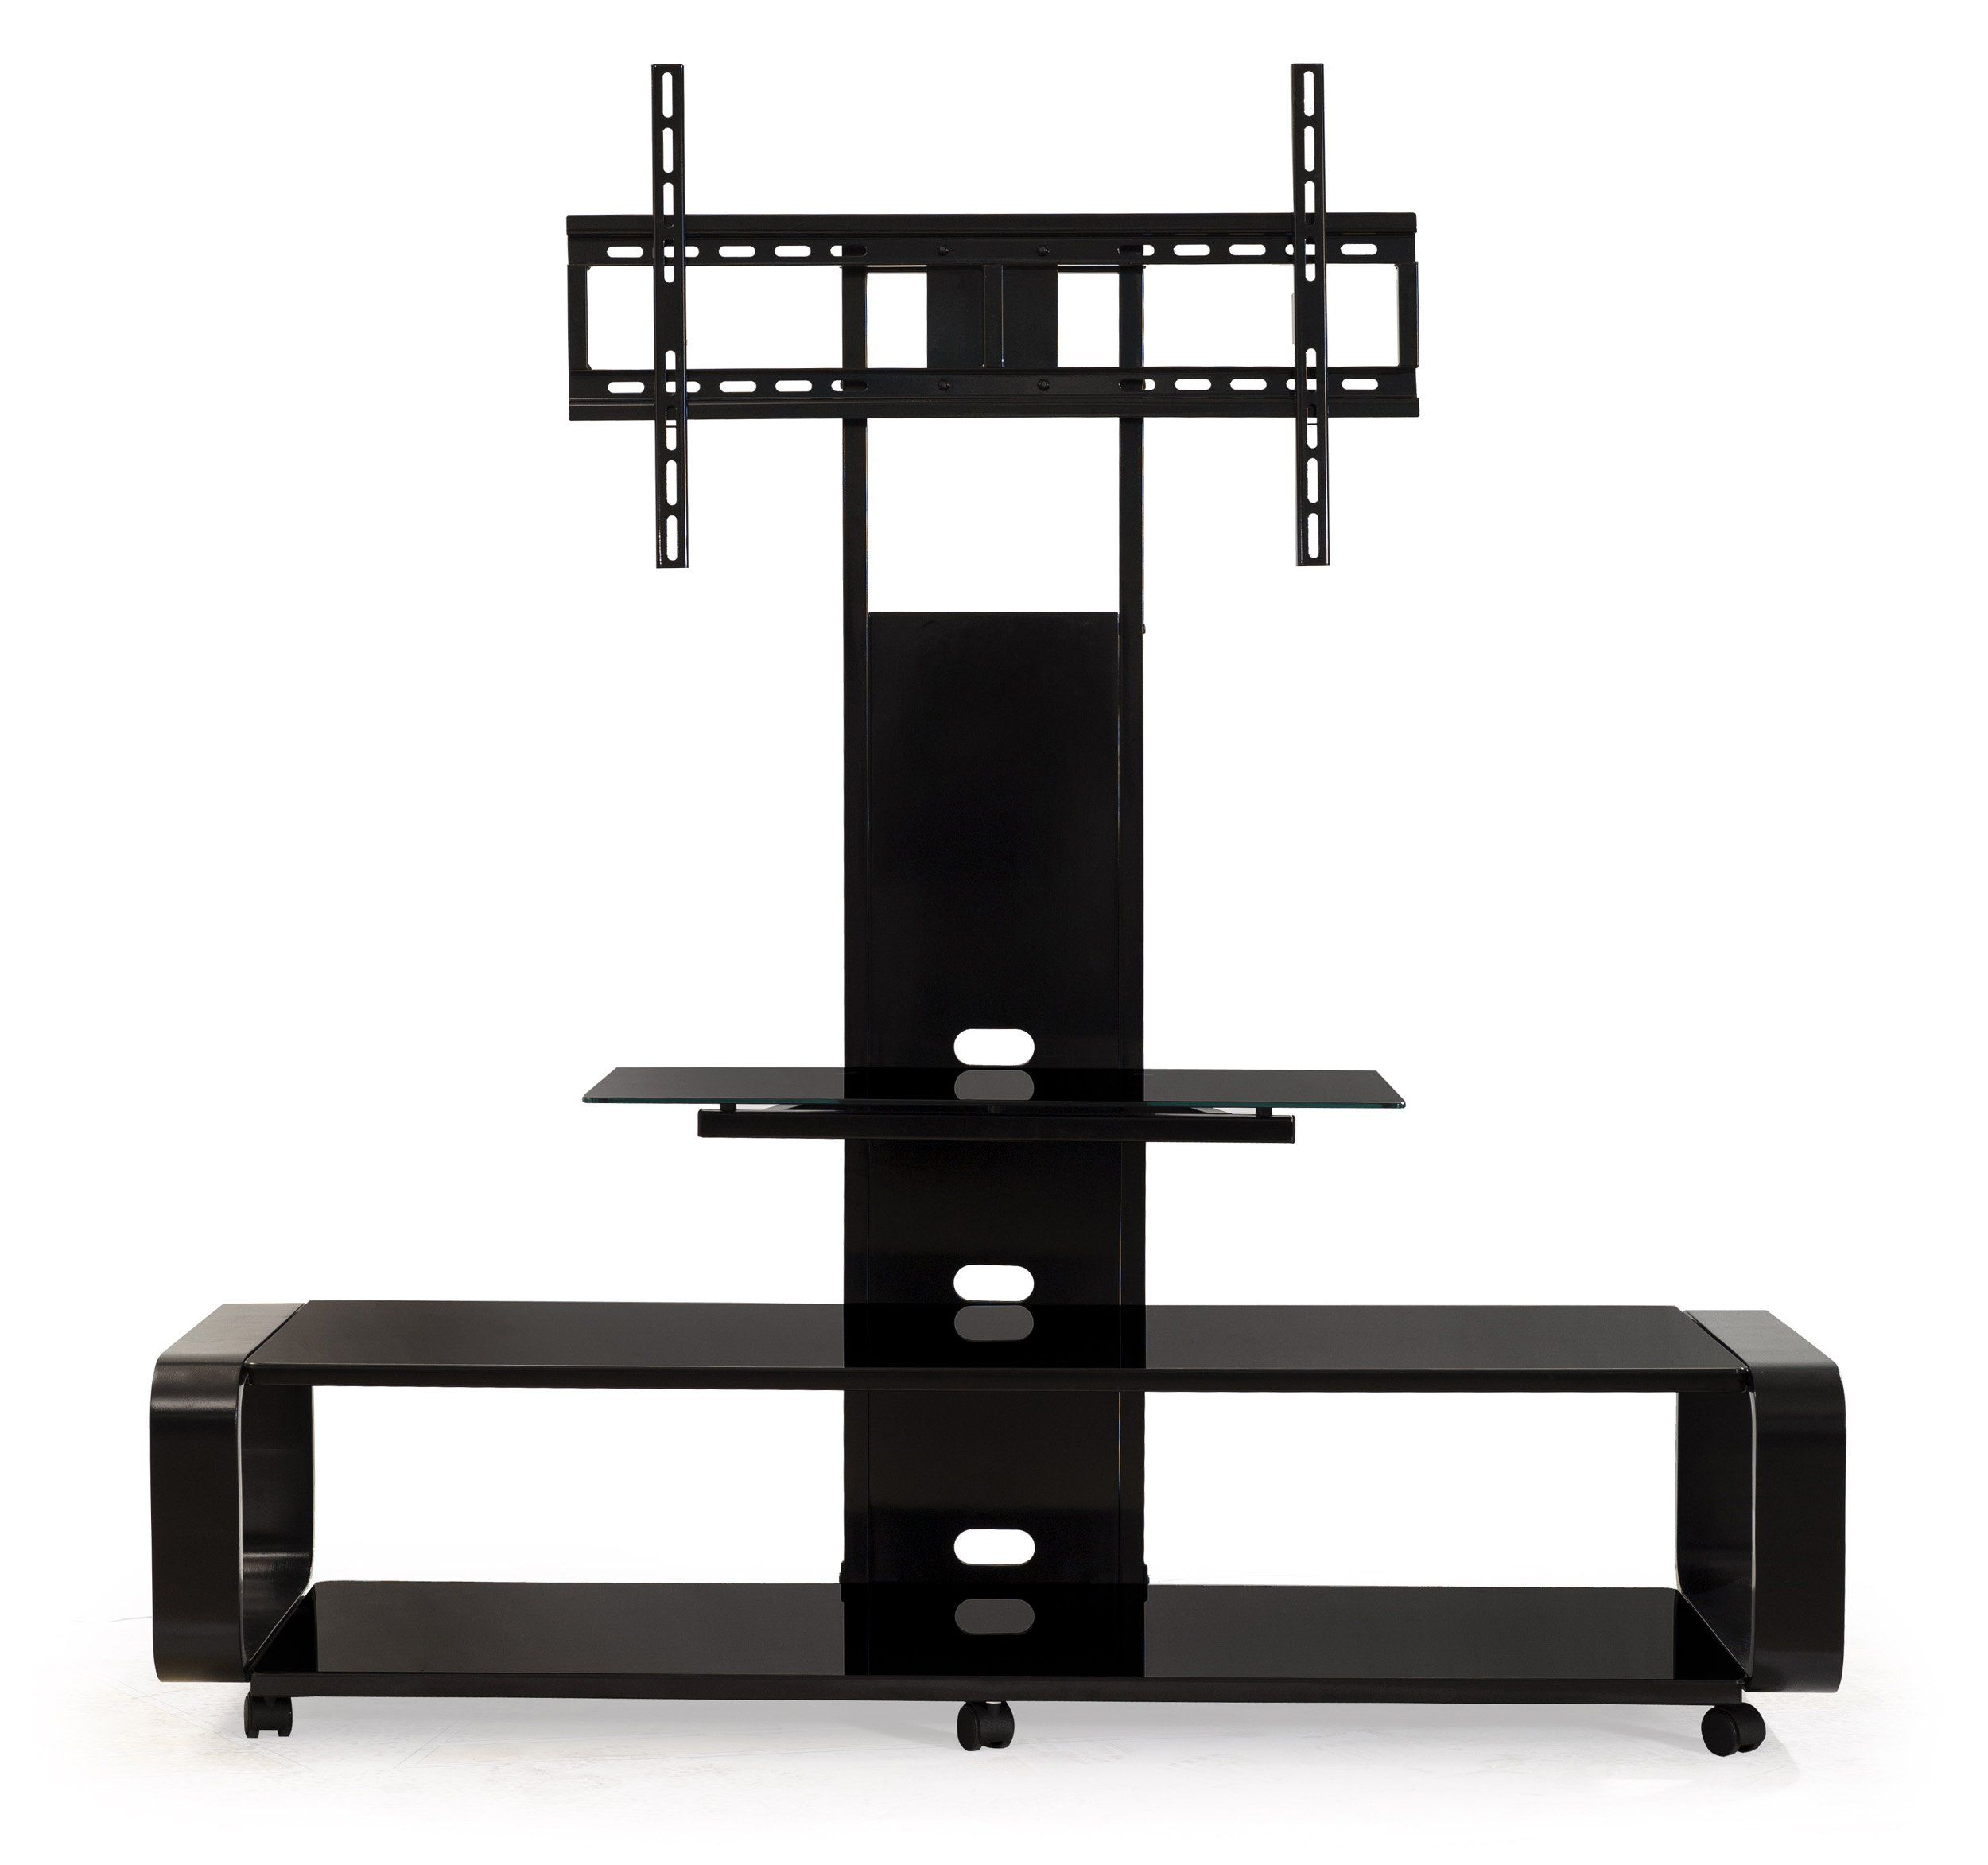 Transdeco Td655b Multi Function Tv Stand With Universal Mount And Caster For 40 80 Inch Lc Tv Stand Wood Tv Stand And Entertainment Center Flat Screen Tv Stand